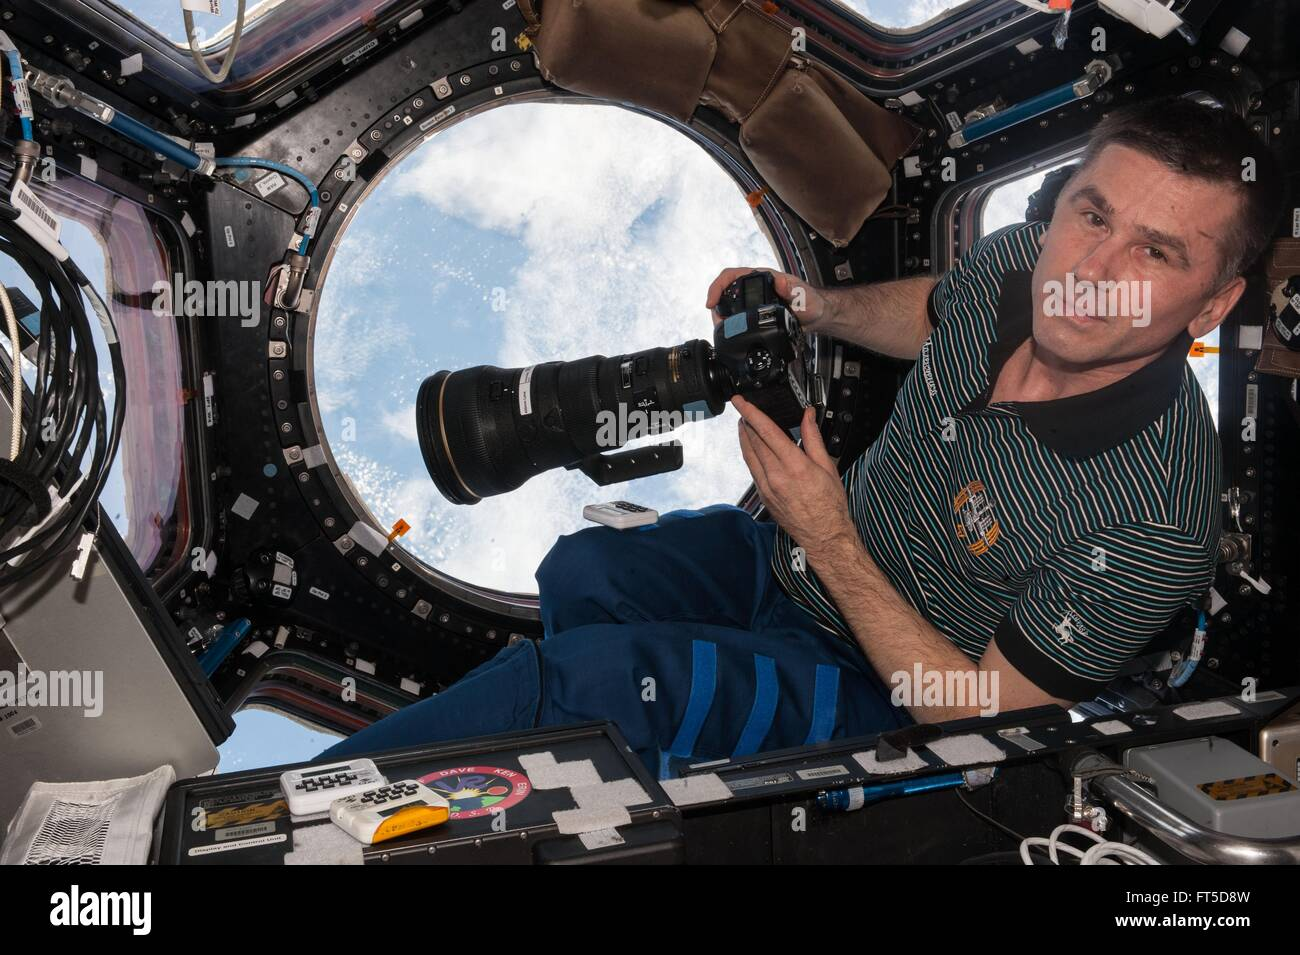 Russian cosmonaut Yuri Malenchenko inside the Cupola module preparing to take Earth pictures using a 400 mm lens - Stock Image